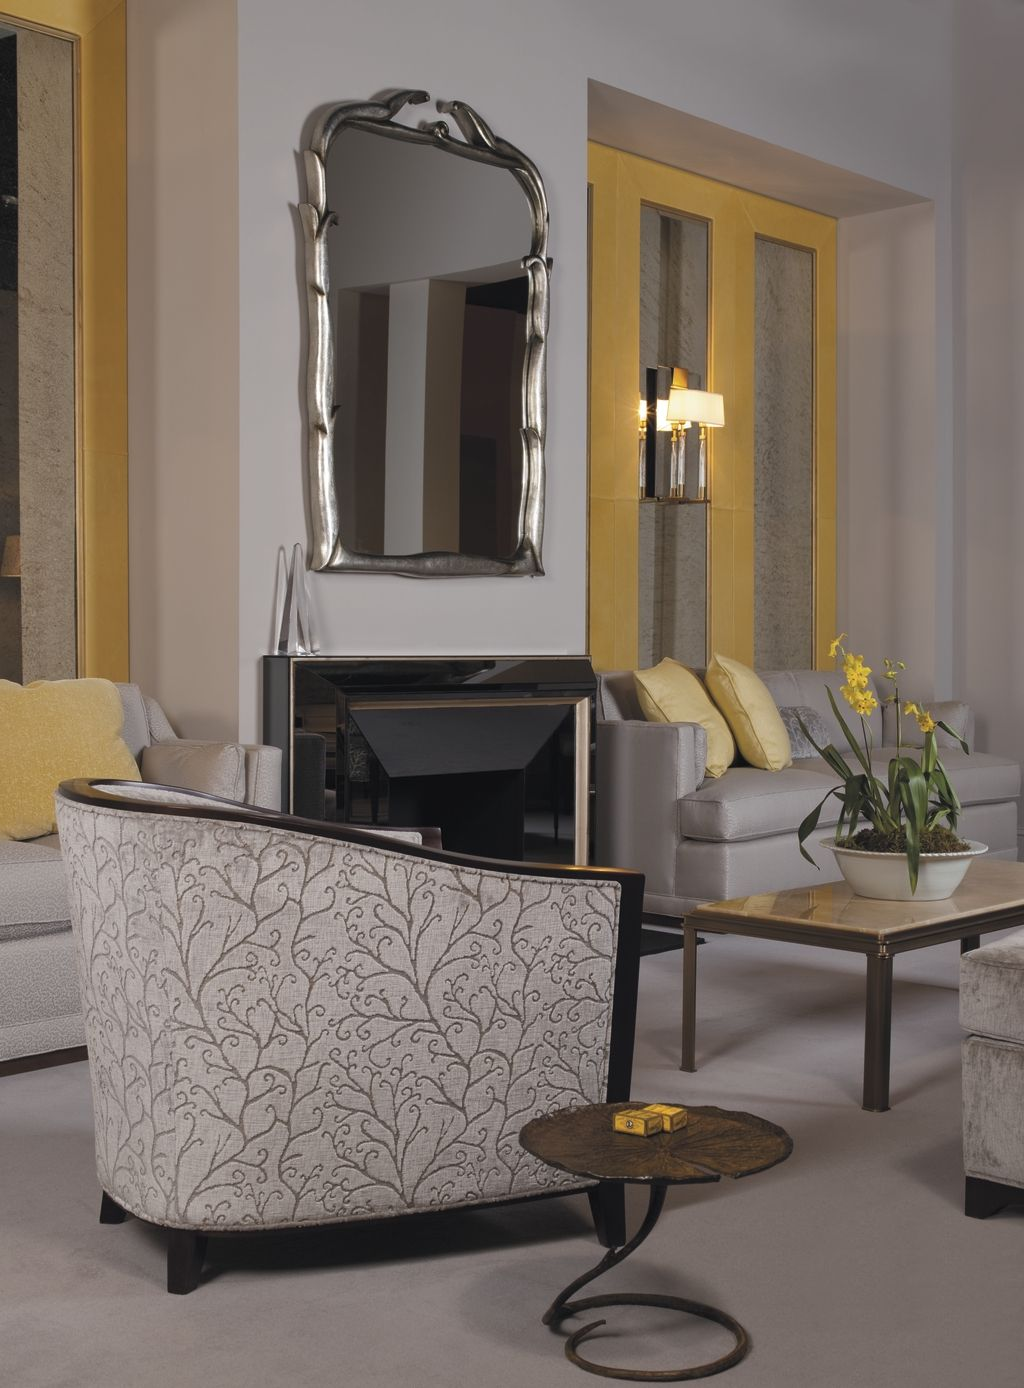 From The Baker Furniture Showroom In High Point Nc A Beautiful Yellow Gray E That Includes Bill Sofield S Lotus Table Savoy Mirror